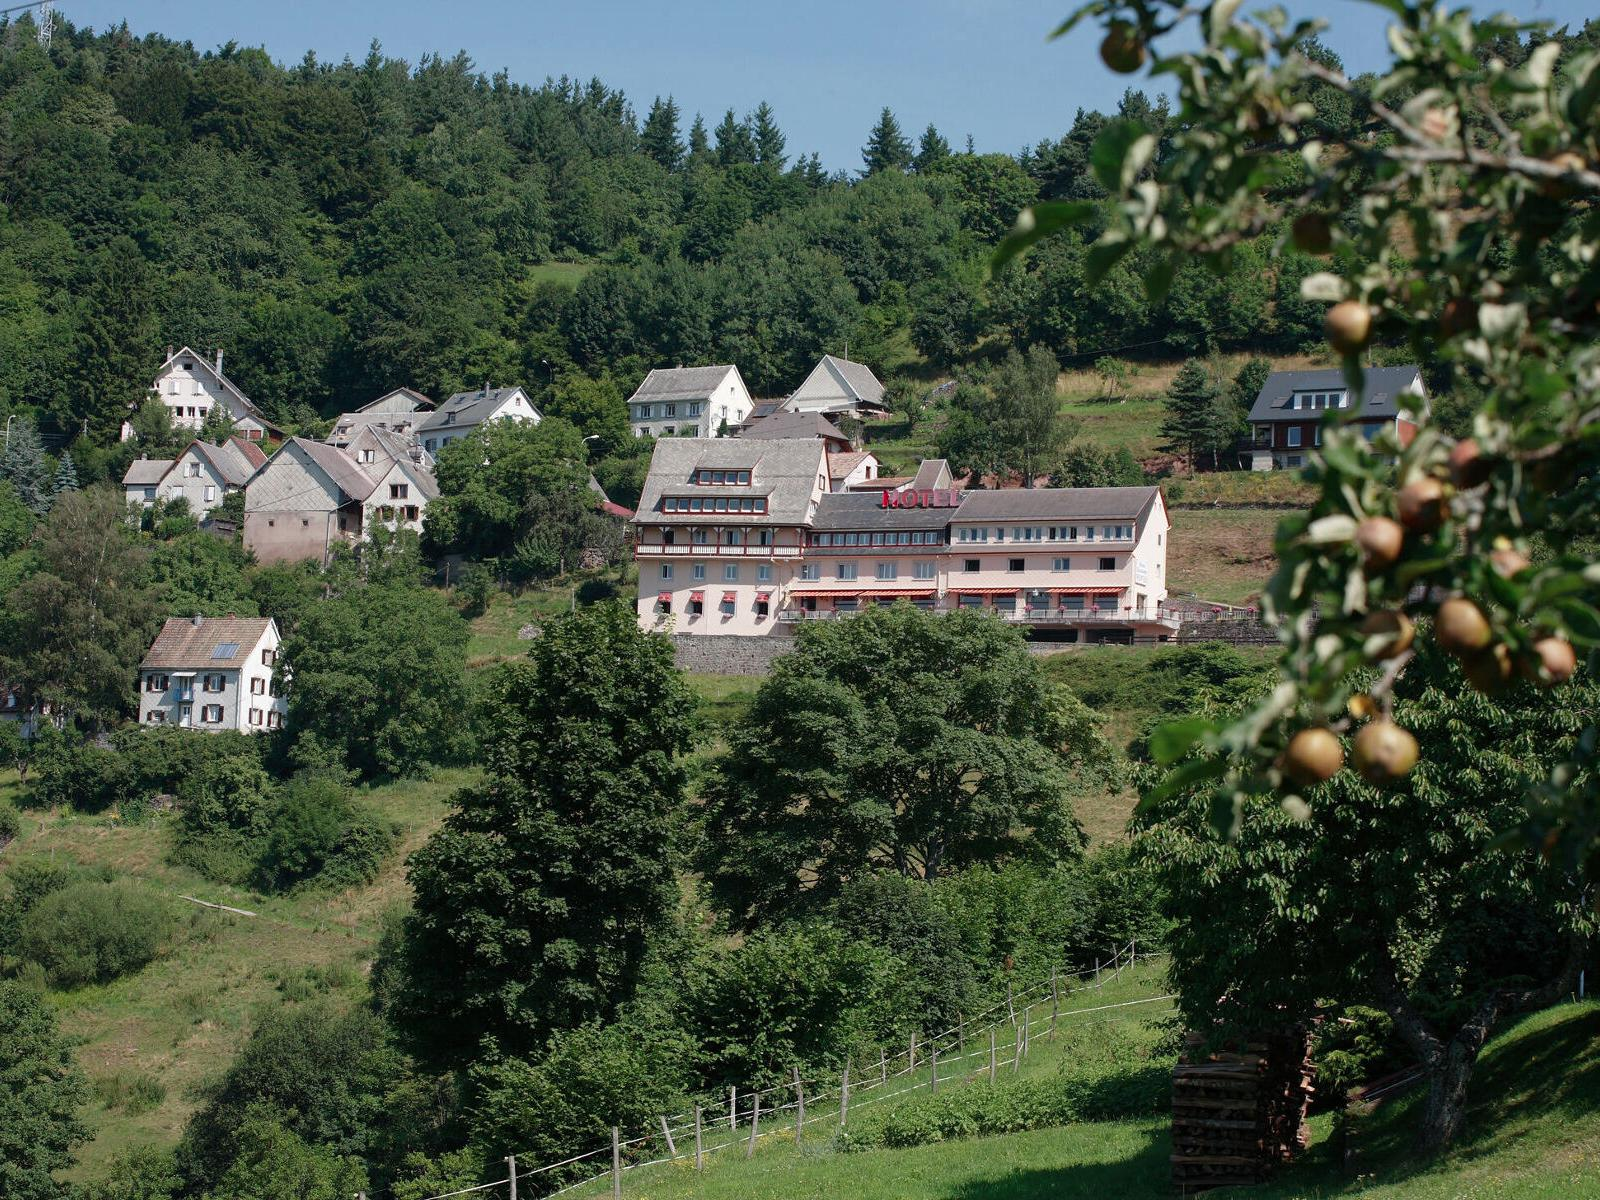 Hôtel roess logis in Hohrod